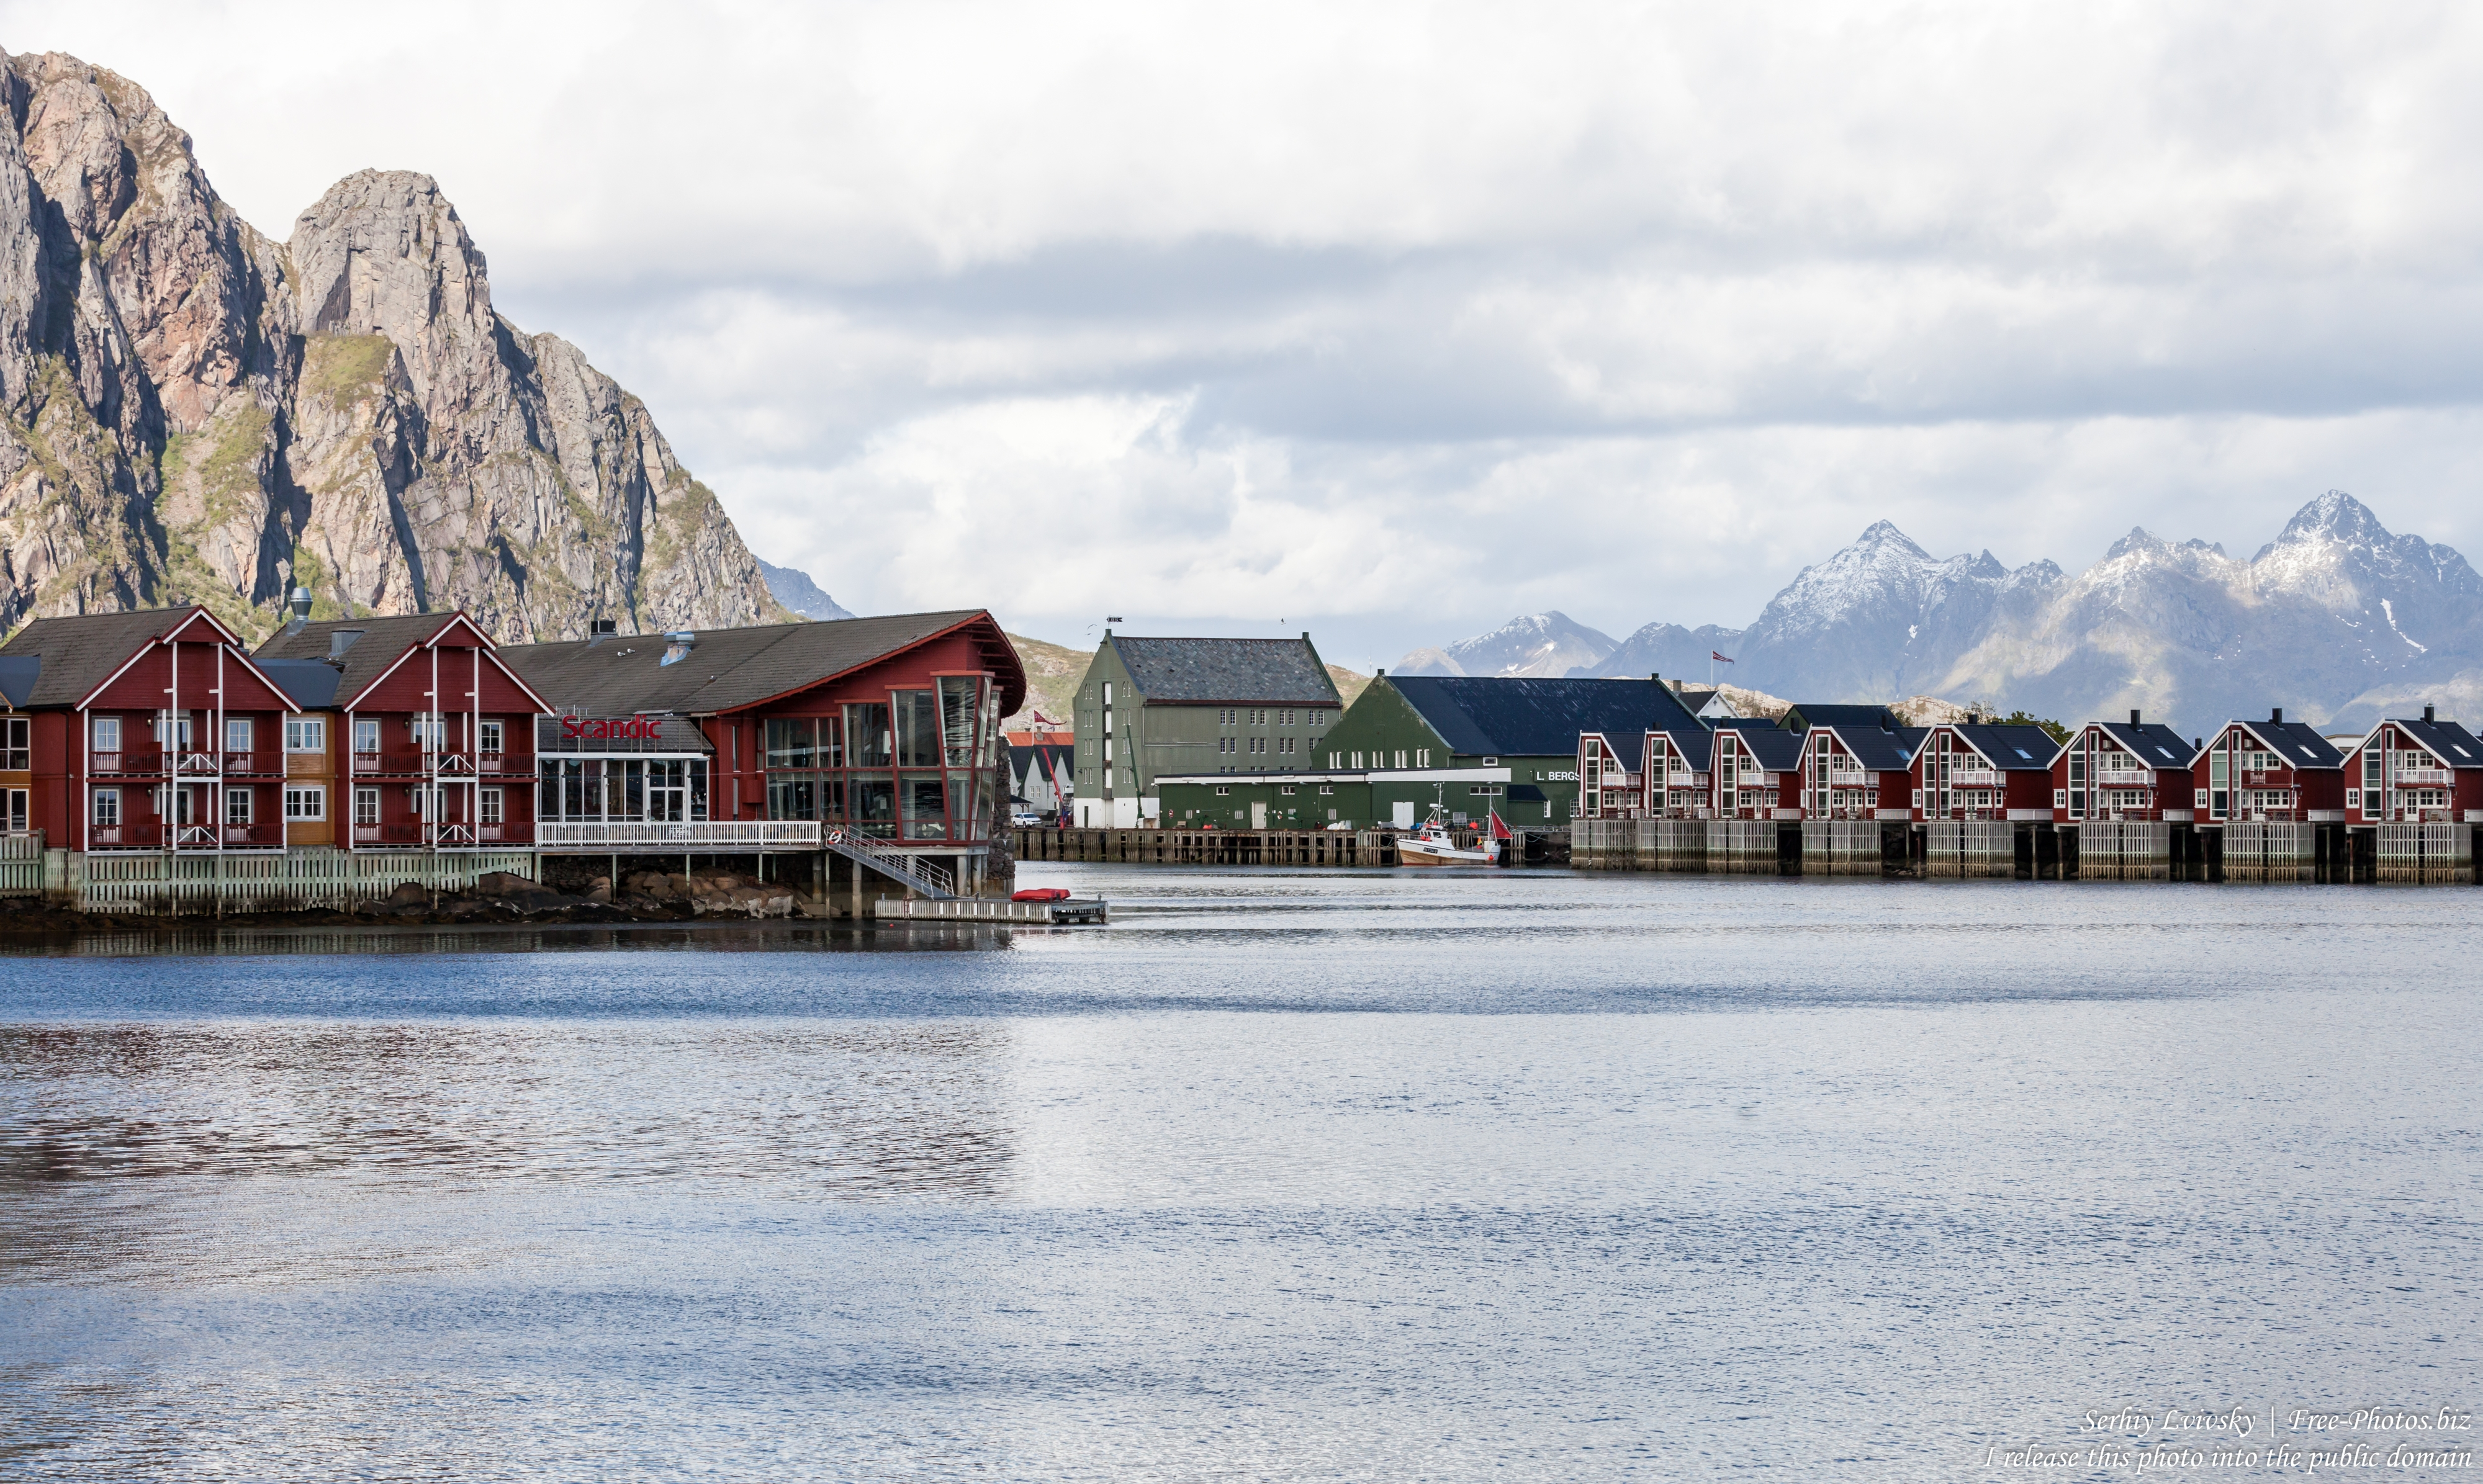 svolvaer_norway_photographed_in_june_2018_by_serhiy_lvivsky_11